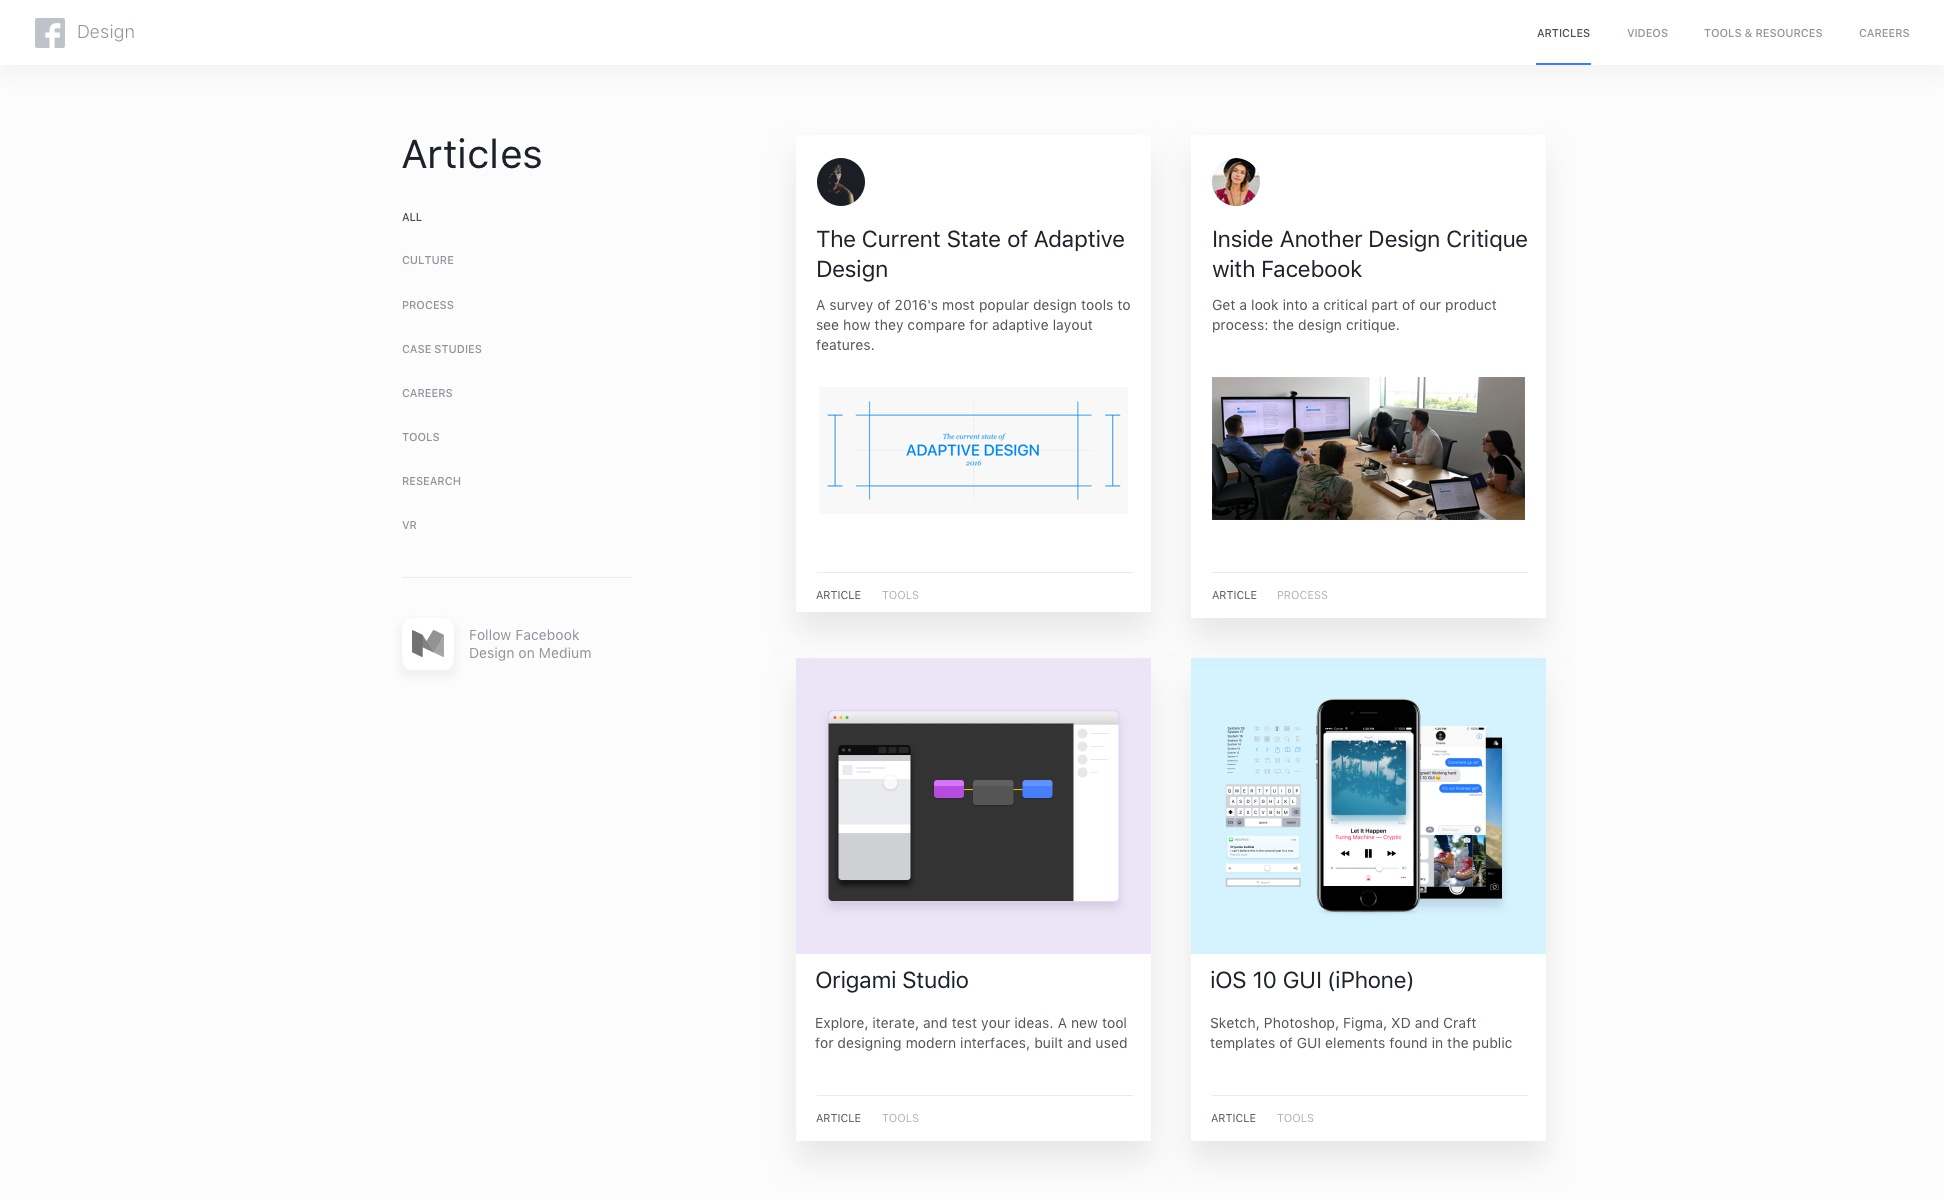 Facebook design articles